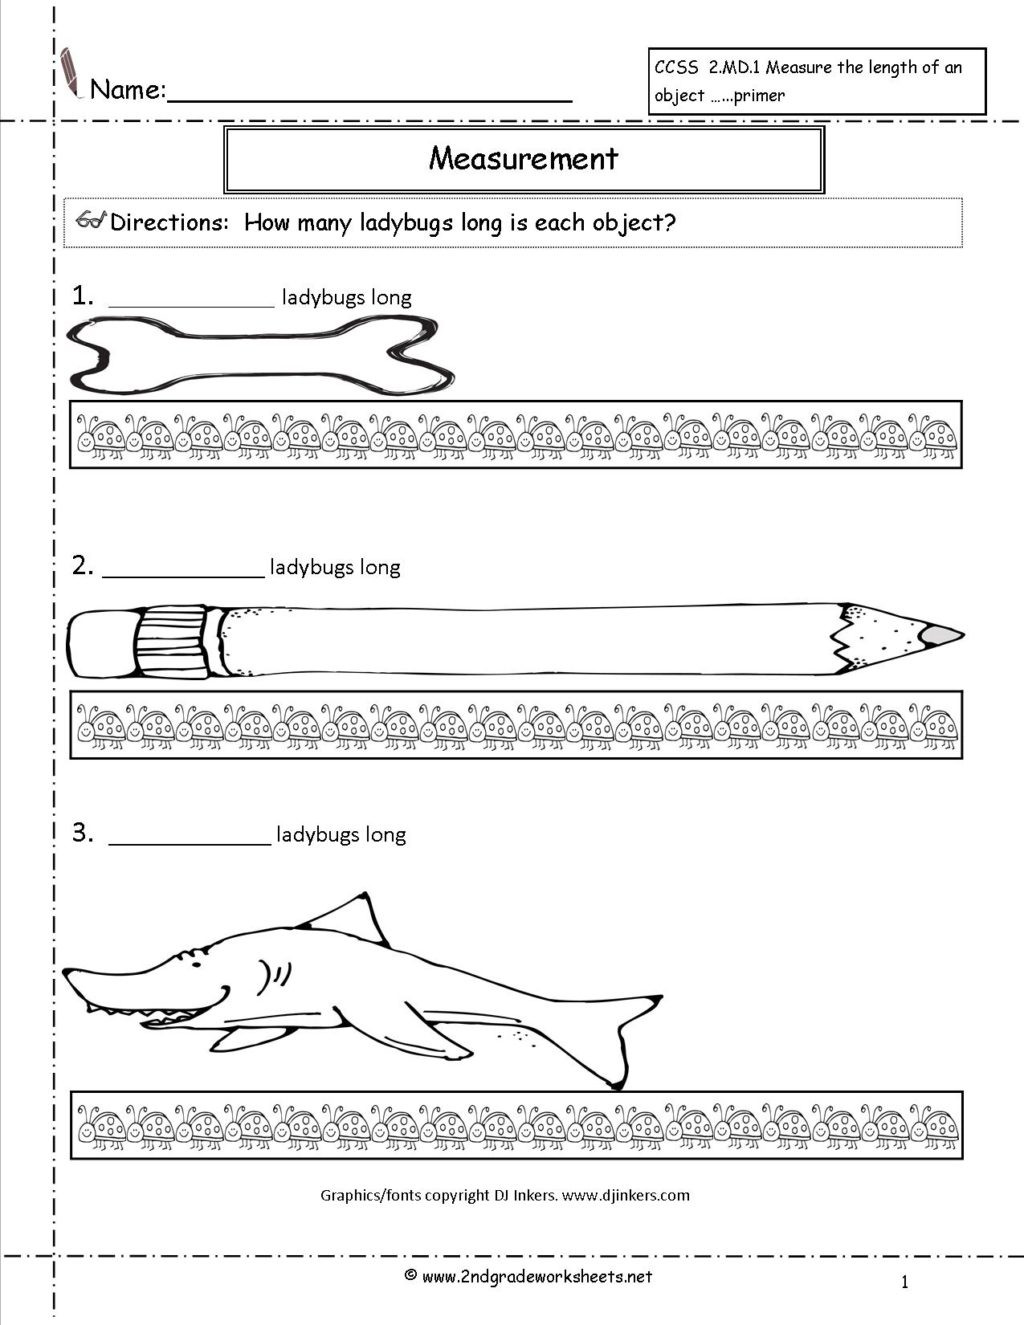 2nd Grade Measurement Worksheets Free Worksheet 2nd Grade Measurementets Pdf Printable Lesson